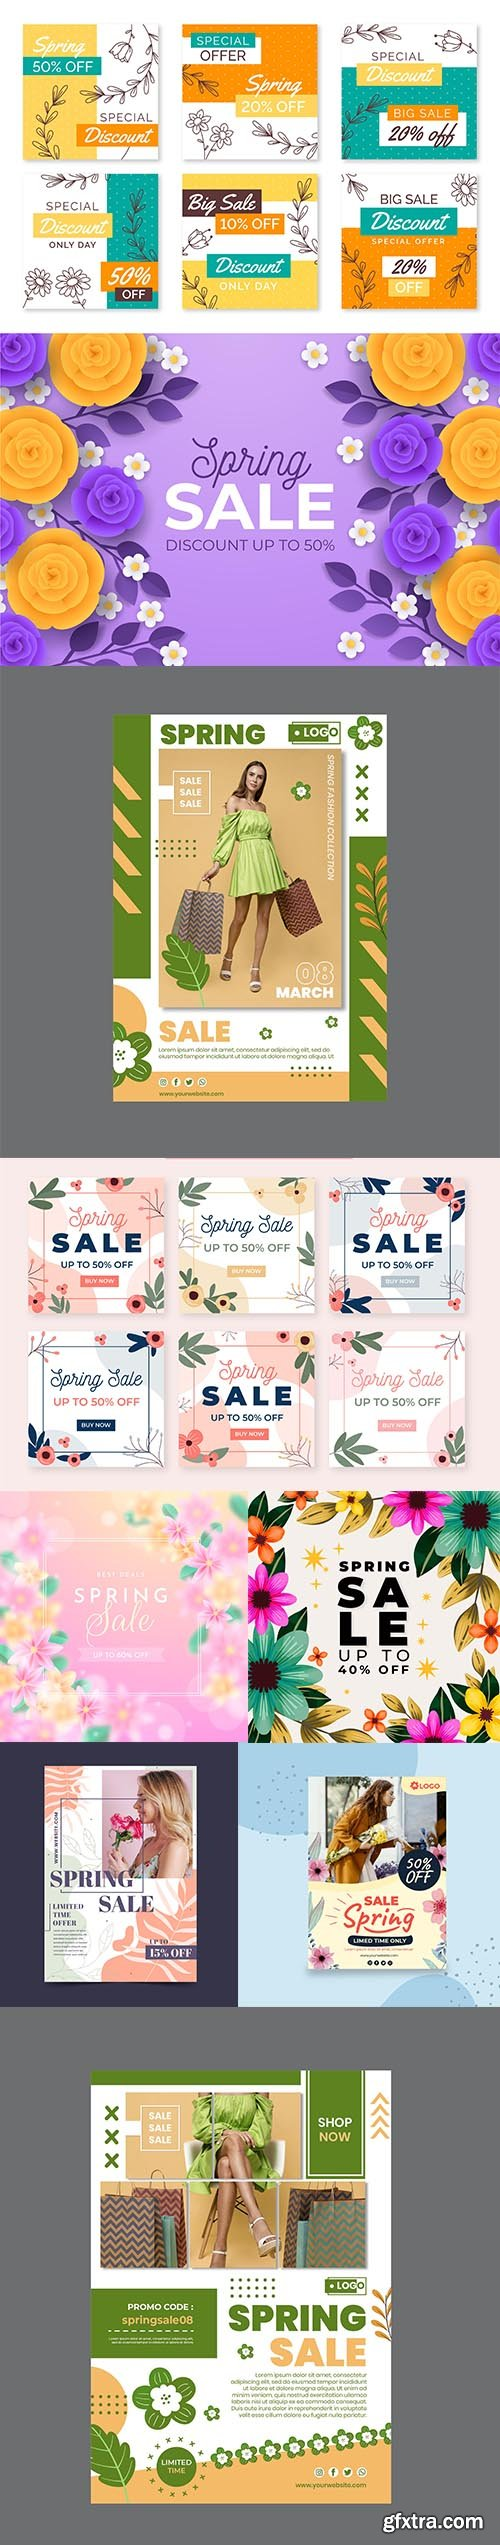 Hand-drawn Spring Sale Vector Collection vol 2